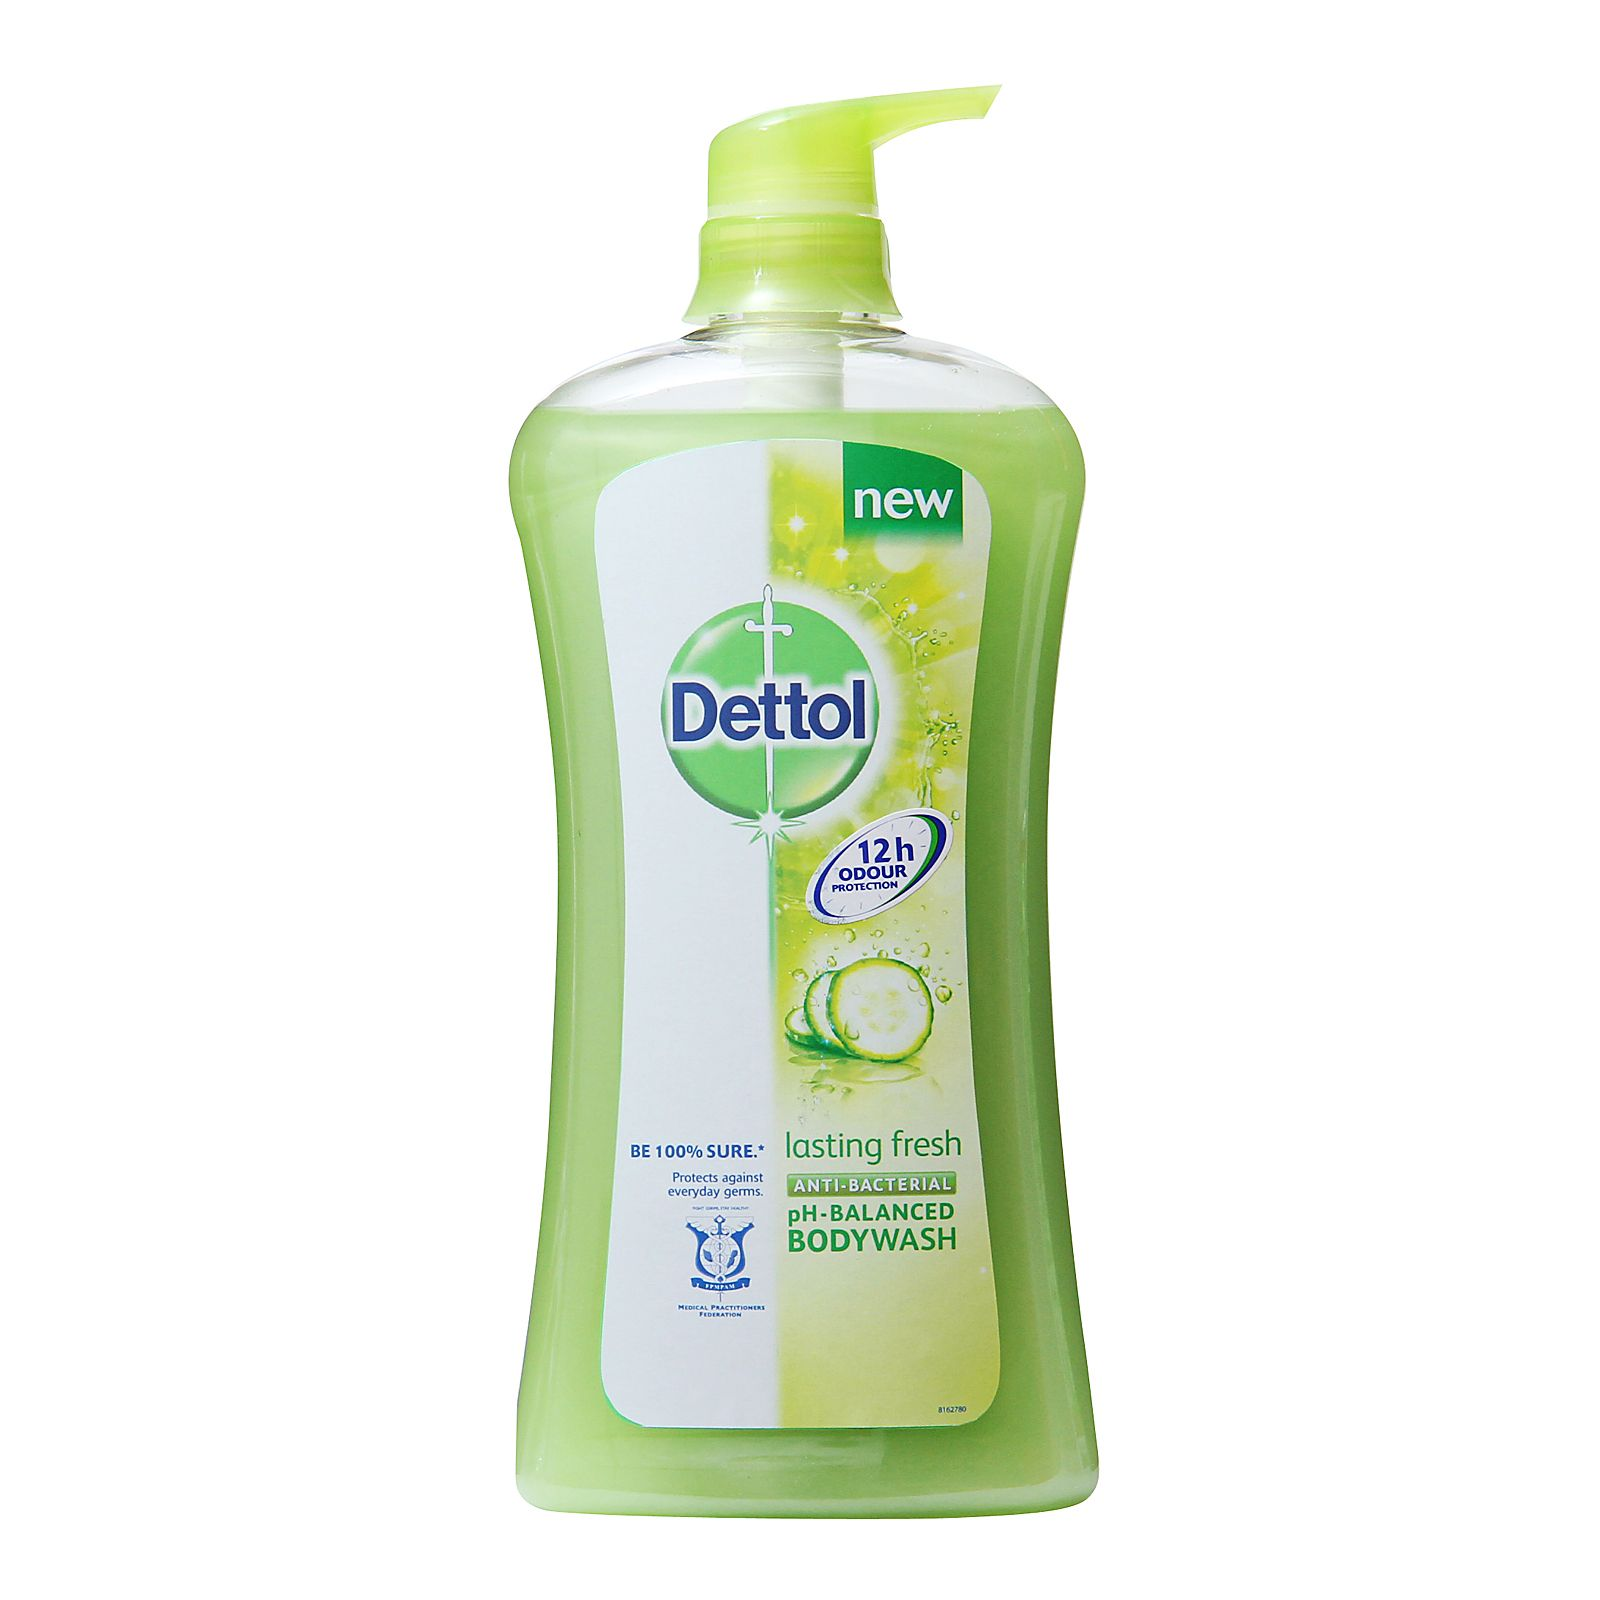 Dettol Anti Bacterial Shower Gel Lasting Fresh Redmart Shower